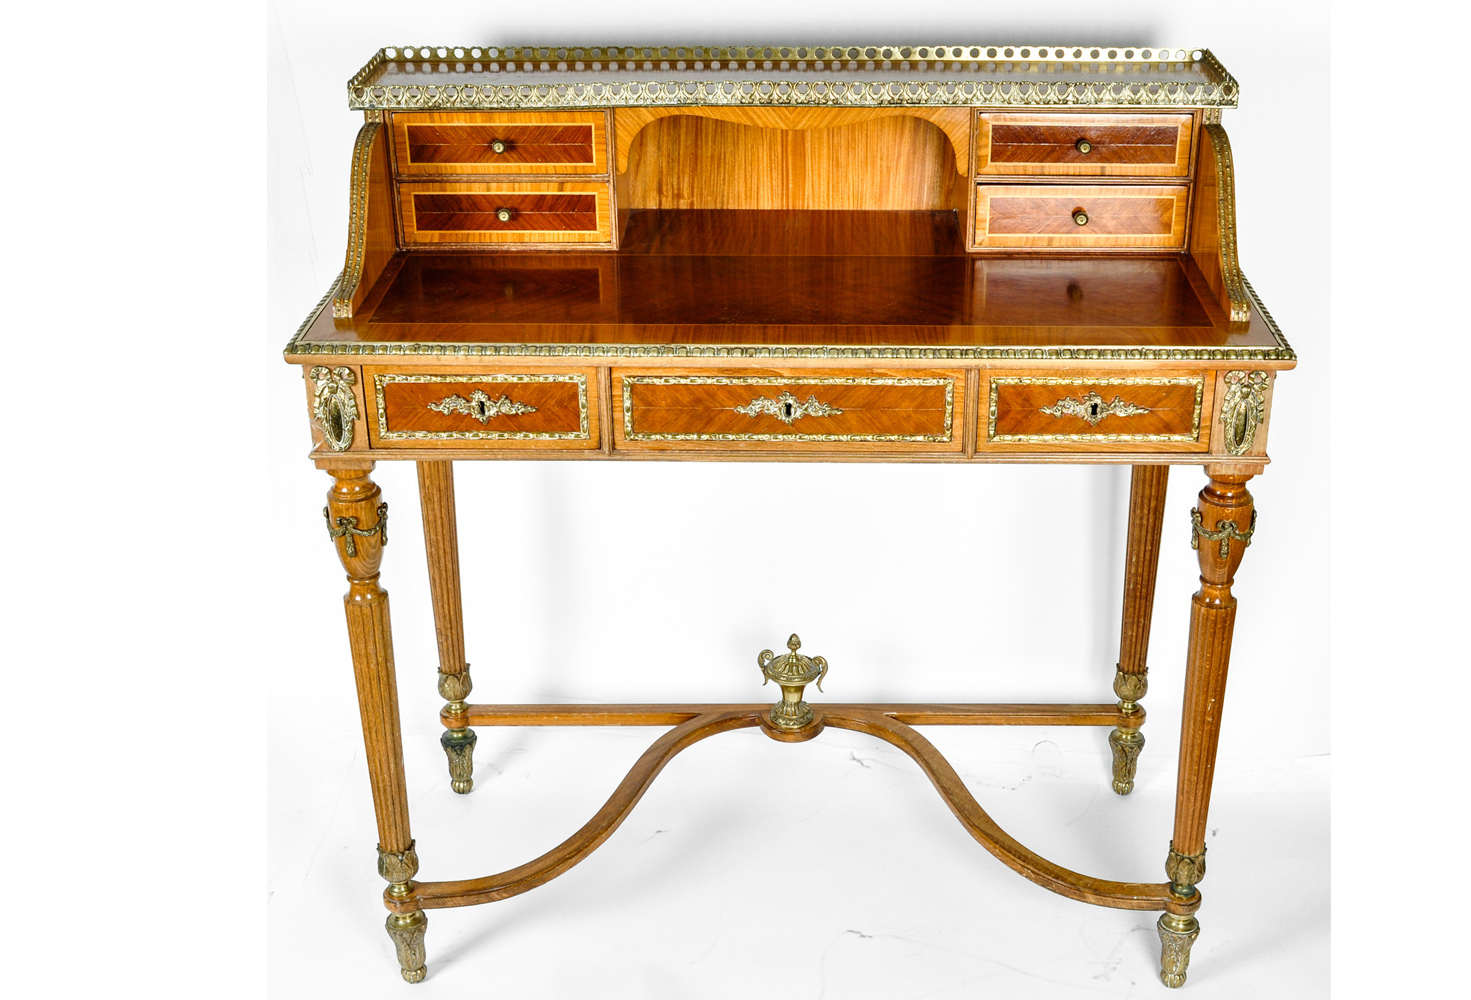 Antique French Louis XV Style Satinwood Writing Desk - Antique French Louis XV Style Satinwood Writing Desk Omero Home